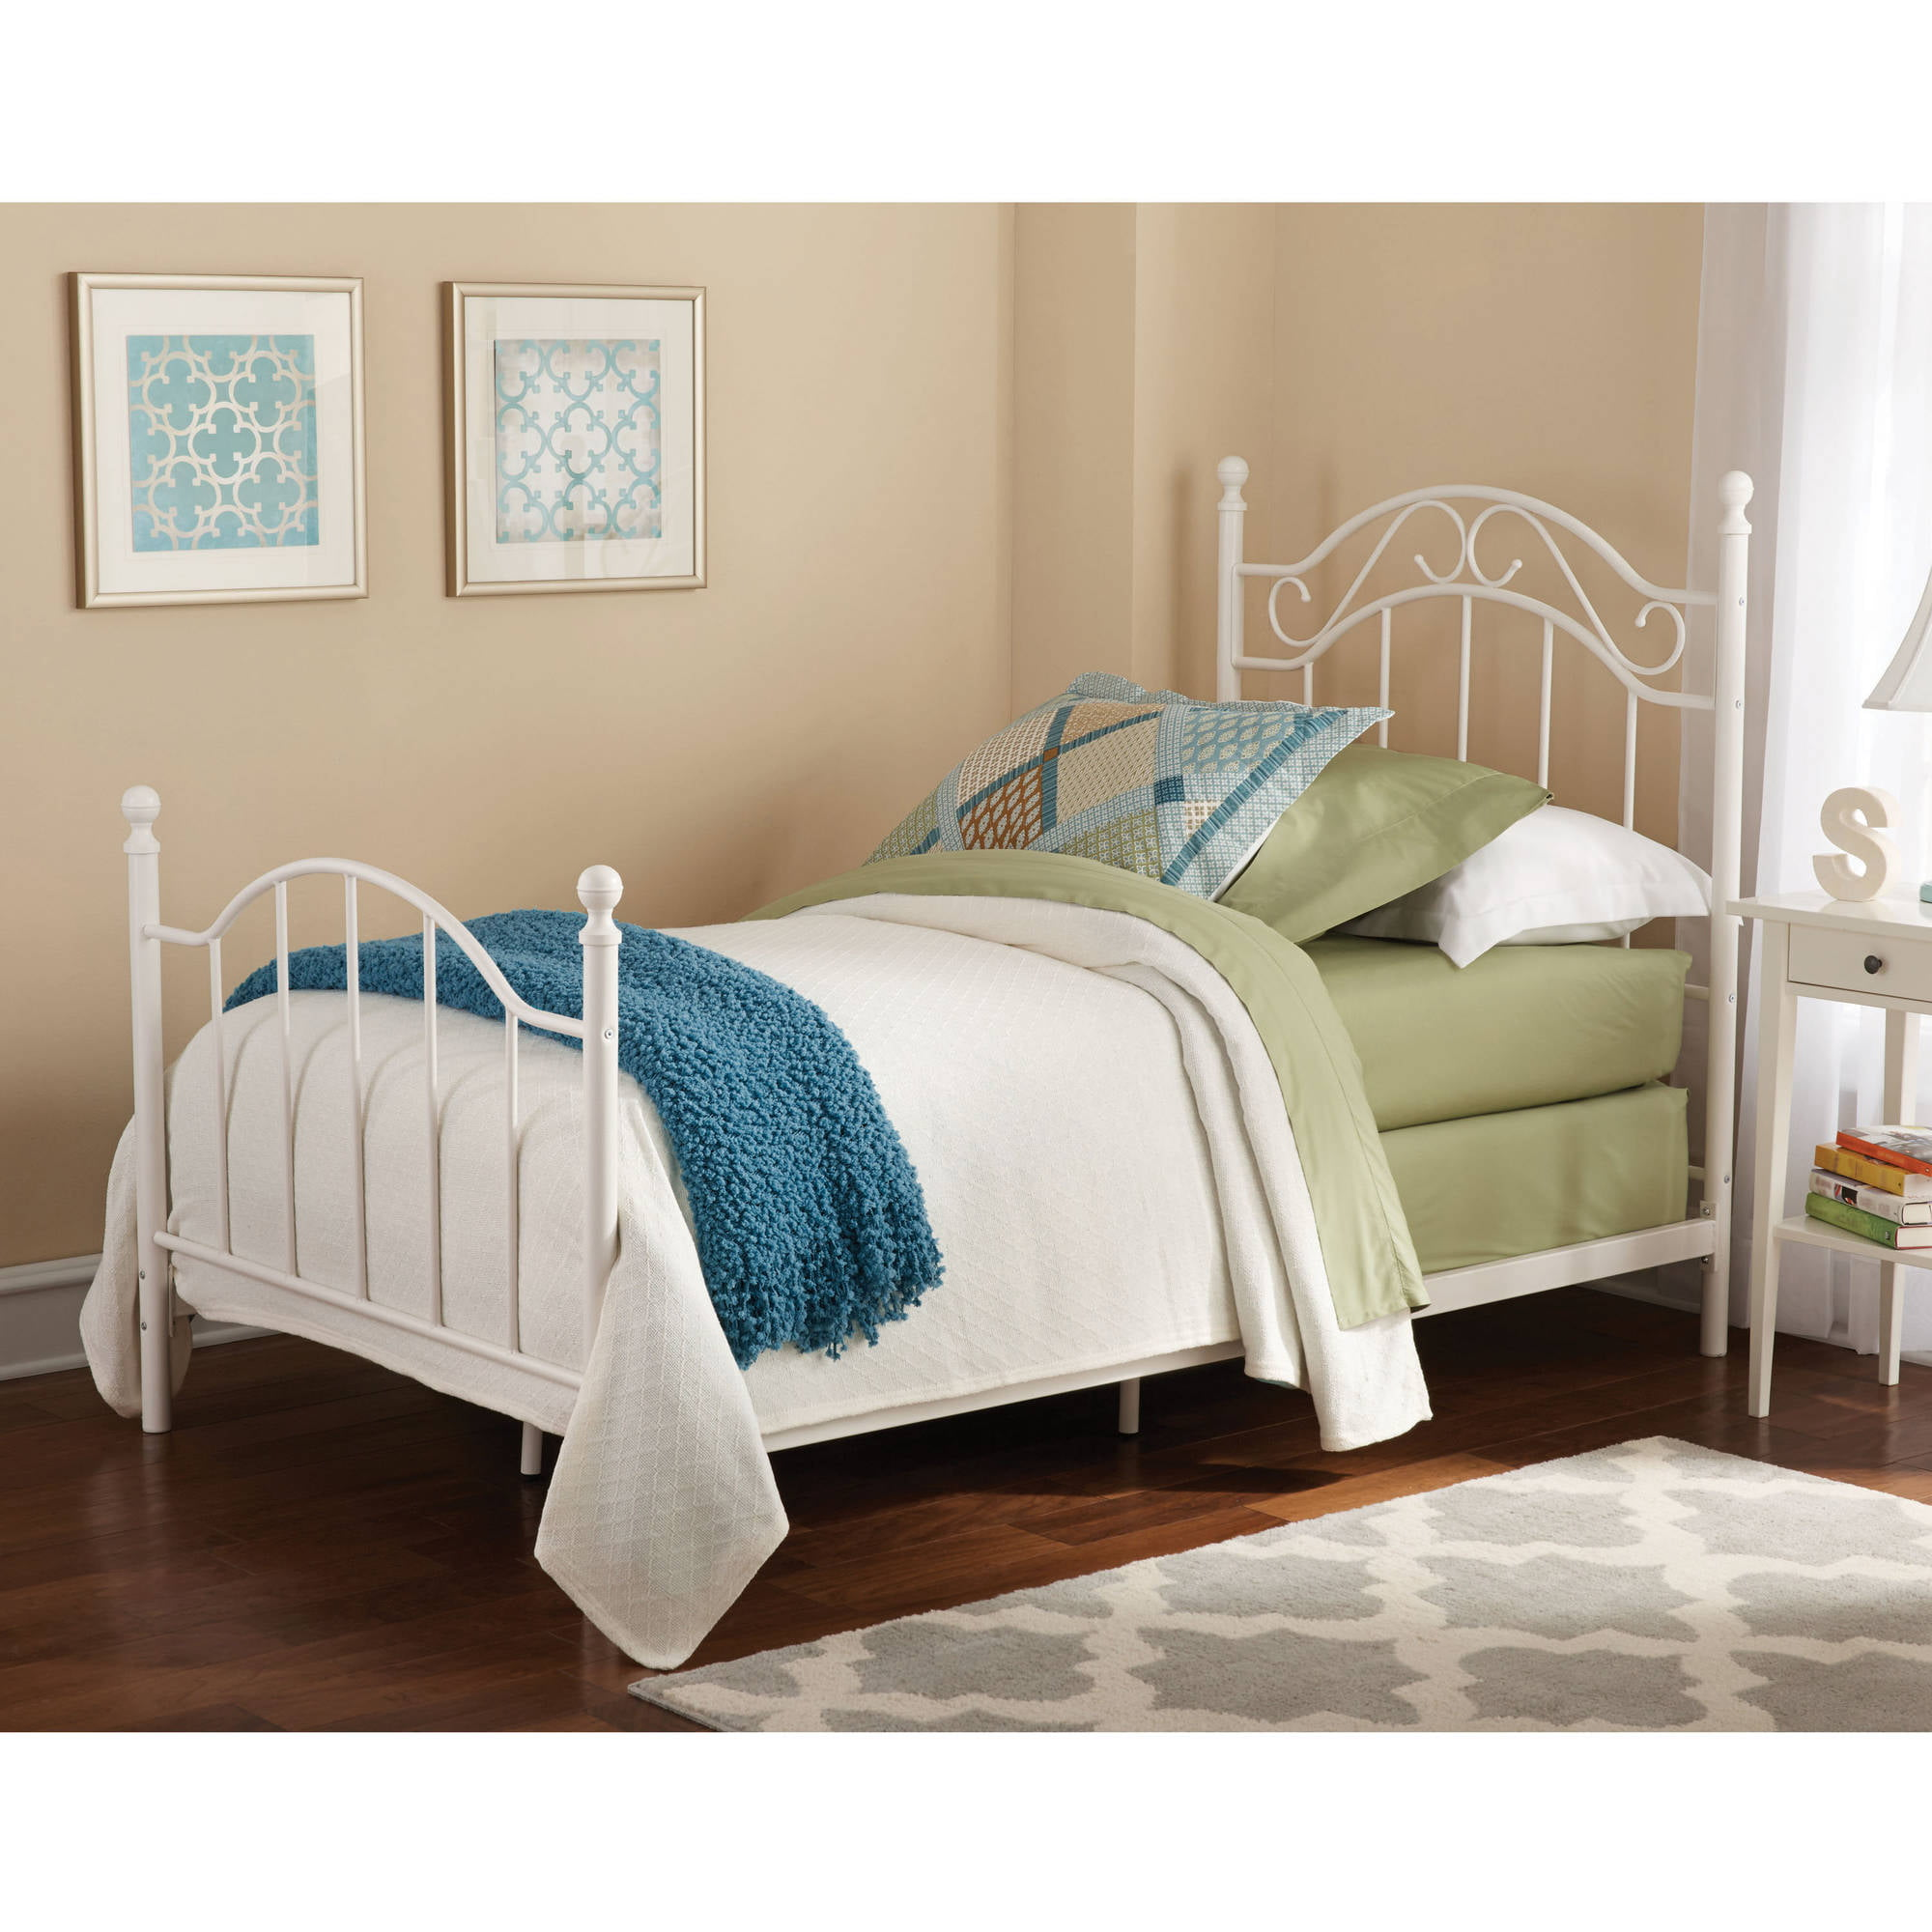 mainstays twin metal bed walmartcom - Twin Bed Frames For Kids